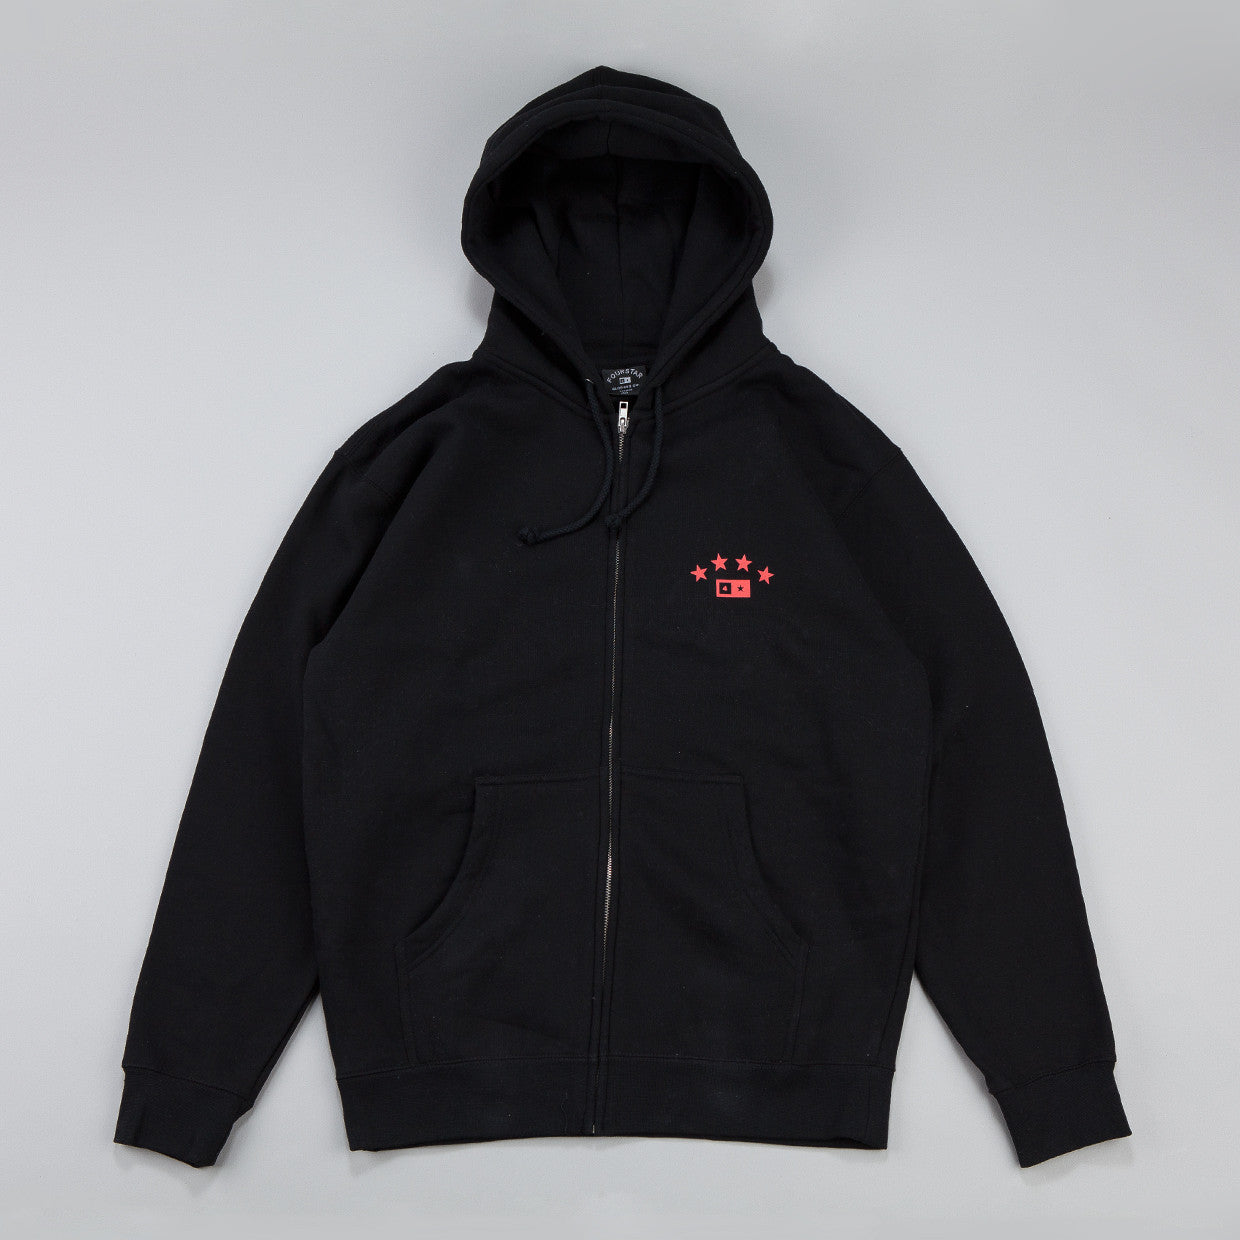 Fourstar FS314 Athletic Zip Hooded Sweatshirt Black